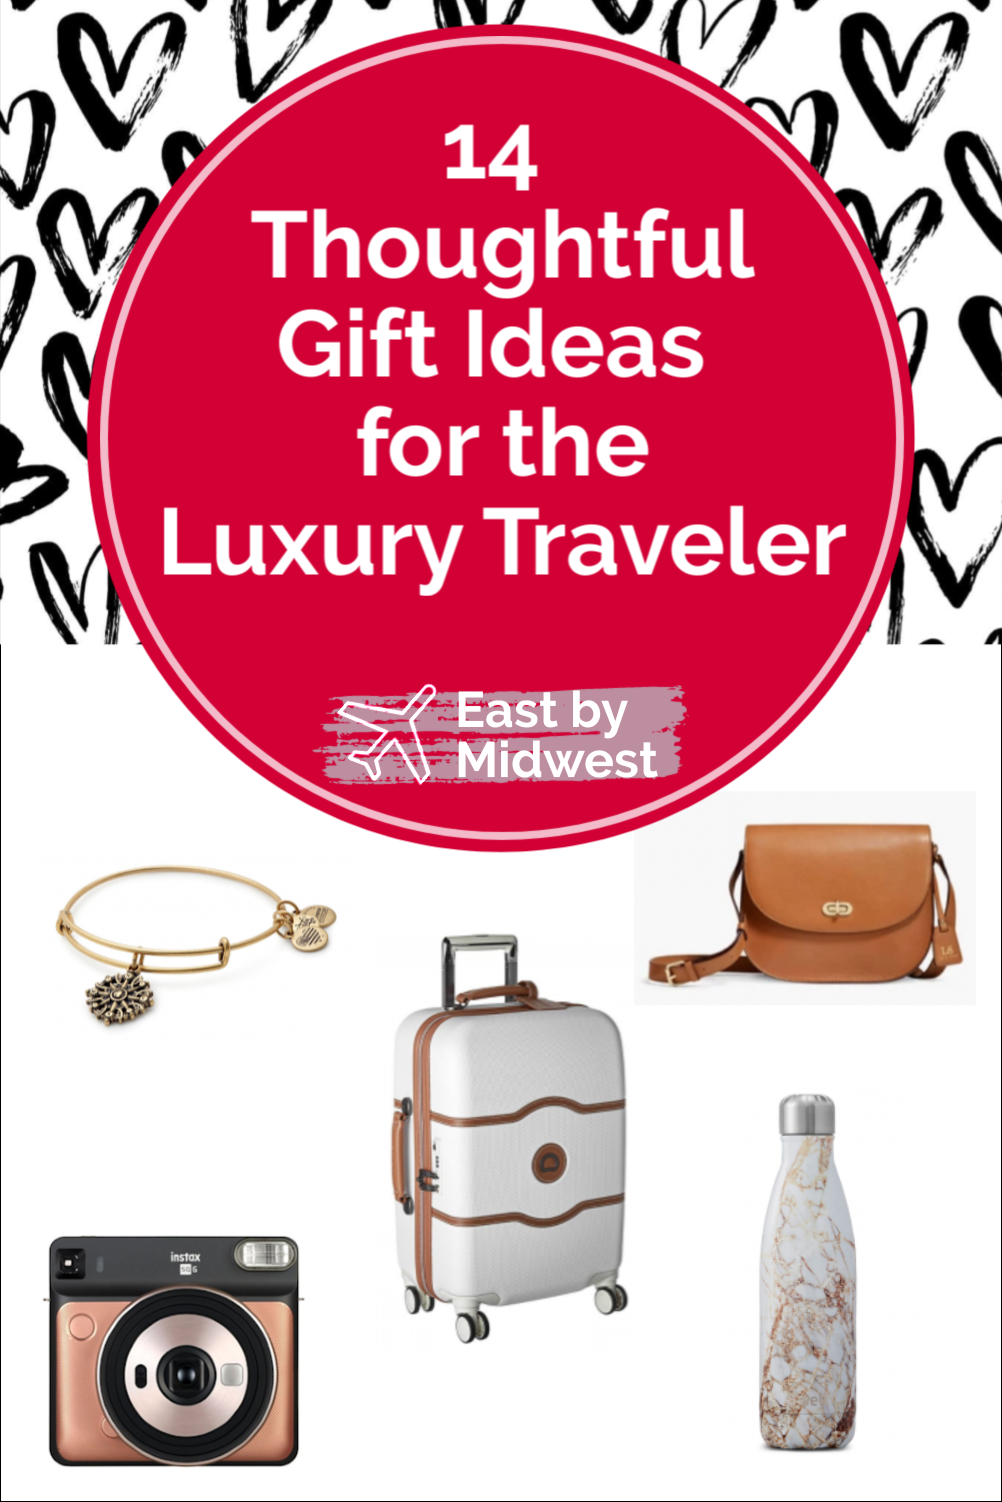 Do you have a luxury traveler in your life? Then this is the gift guide for you! Make their travel experience even more luxurious with these gifts. #giftguide #luxurygiftguide #luxurytraveler #traveler #travel #luxurytravel